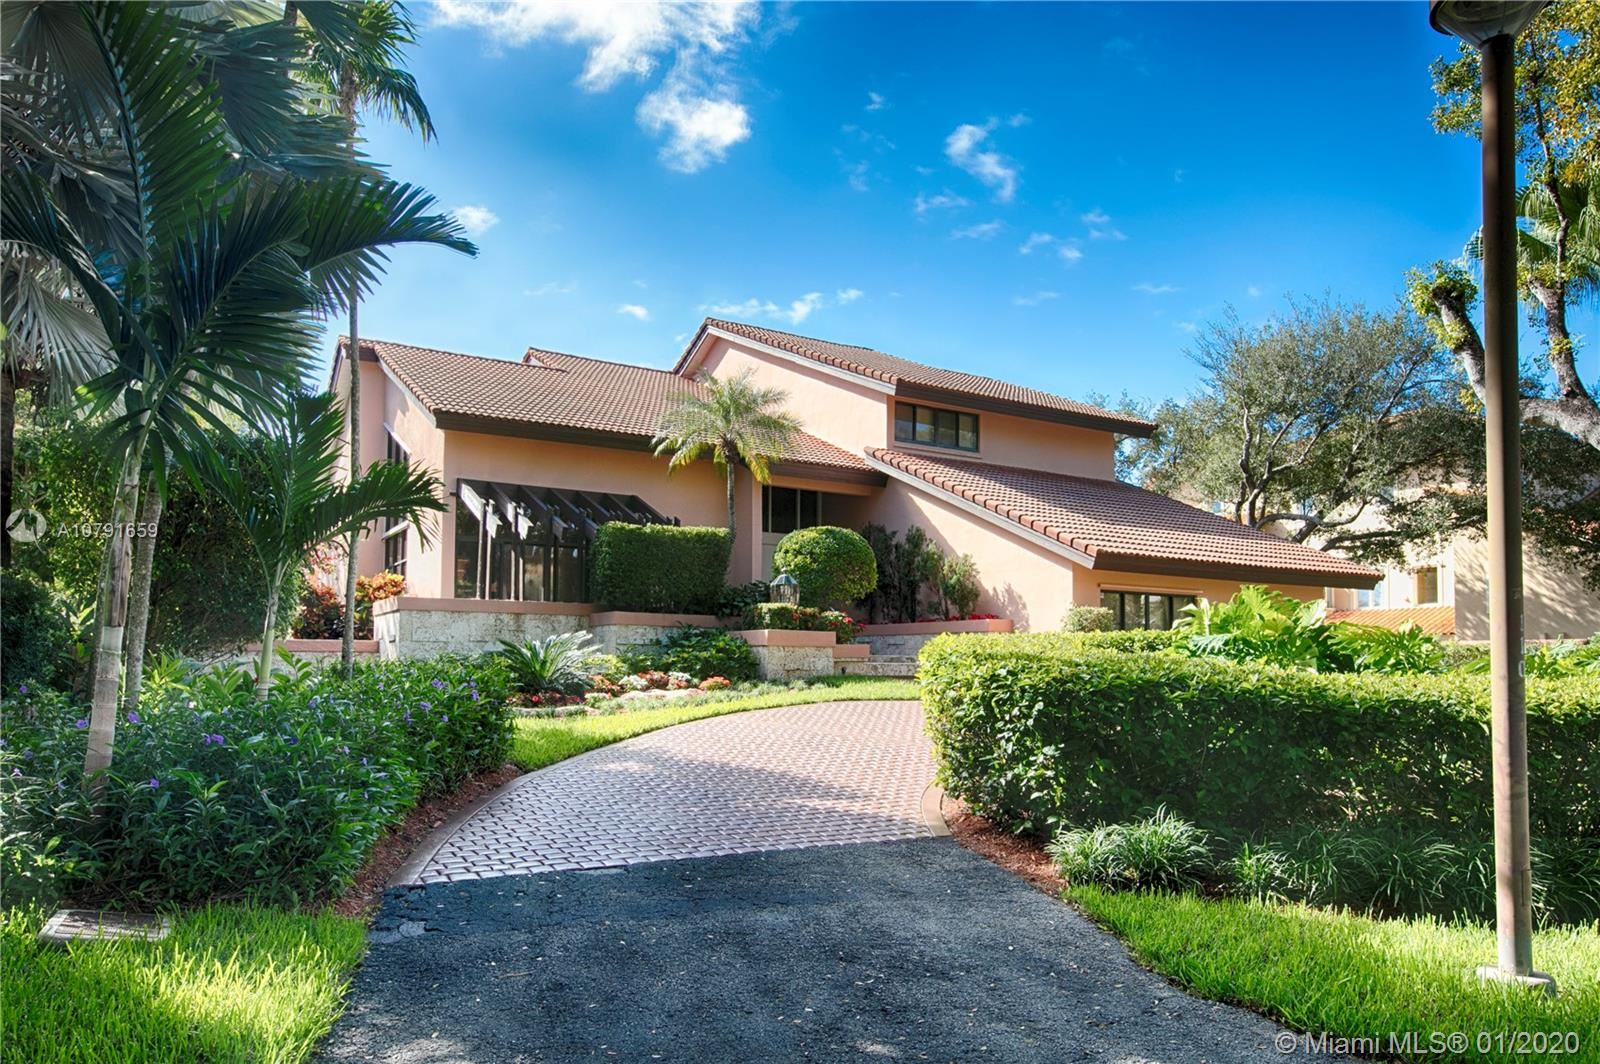 360 Costanera Rd, Coral Gables, FL 33143 - #: A10791659